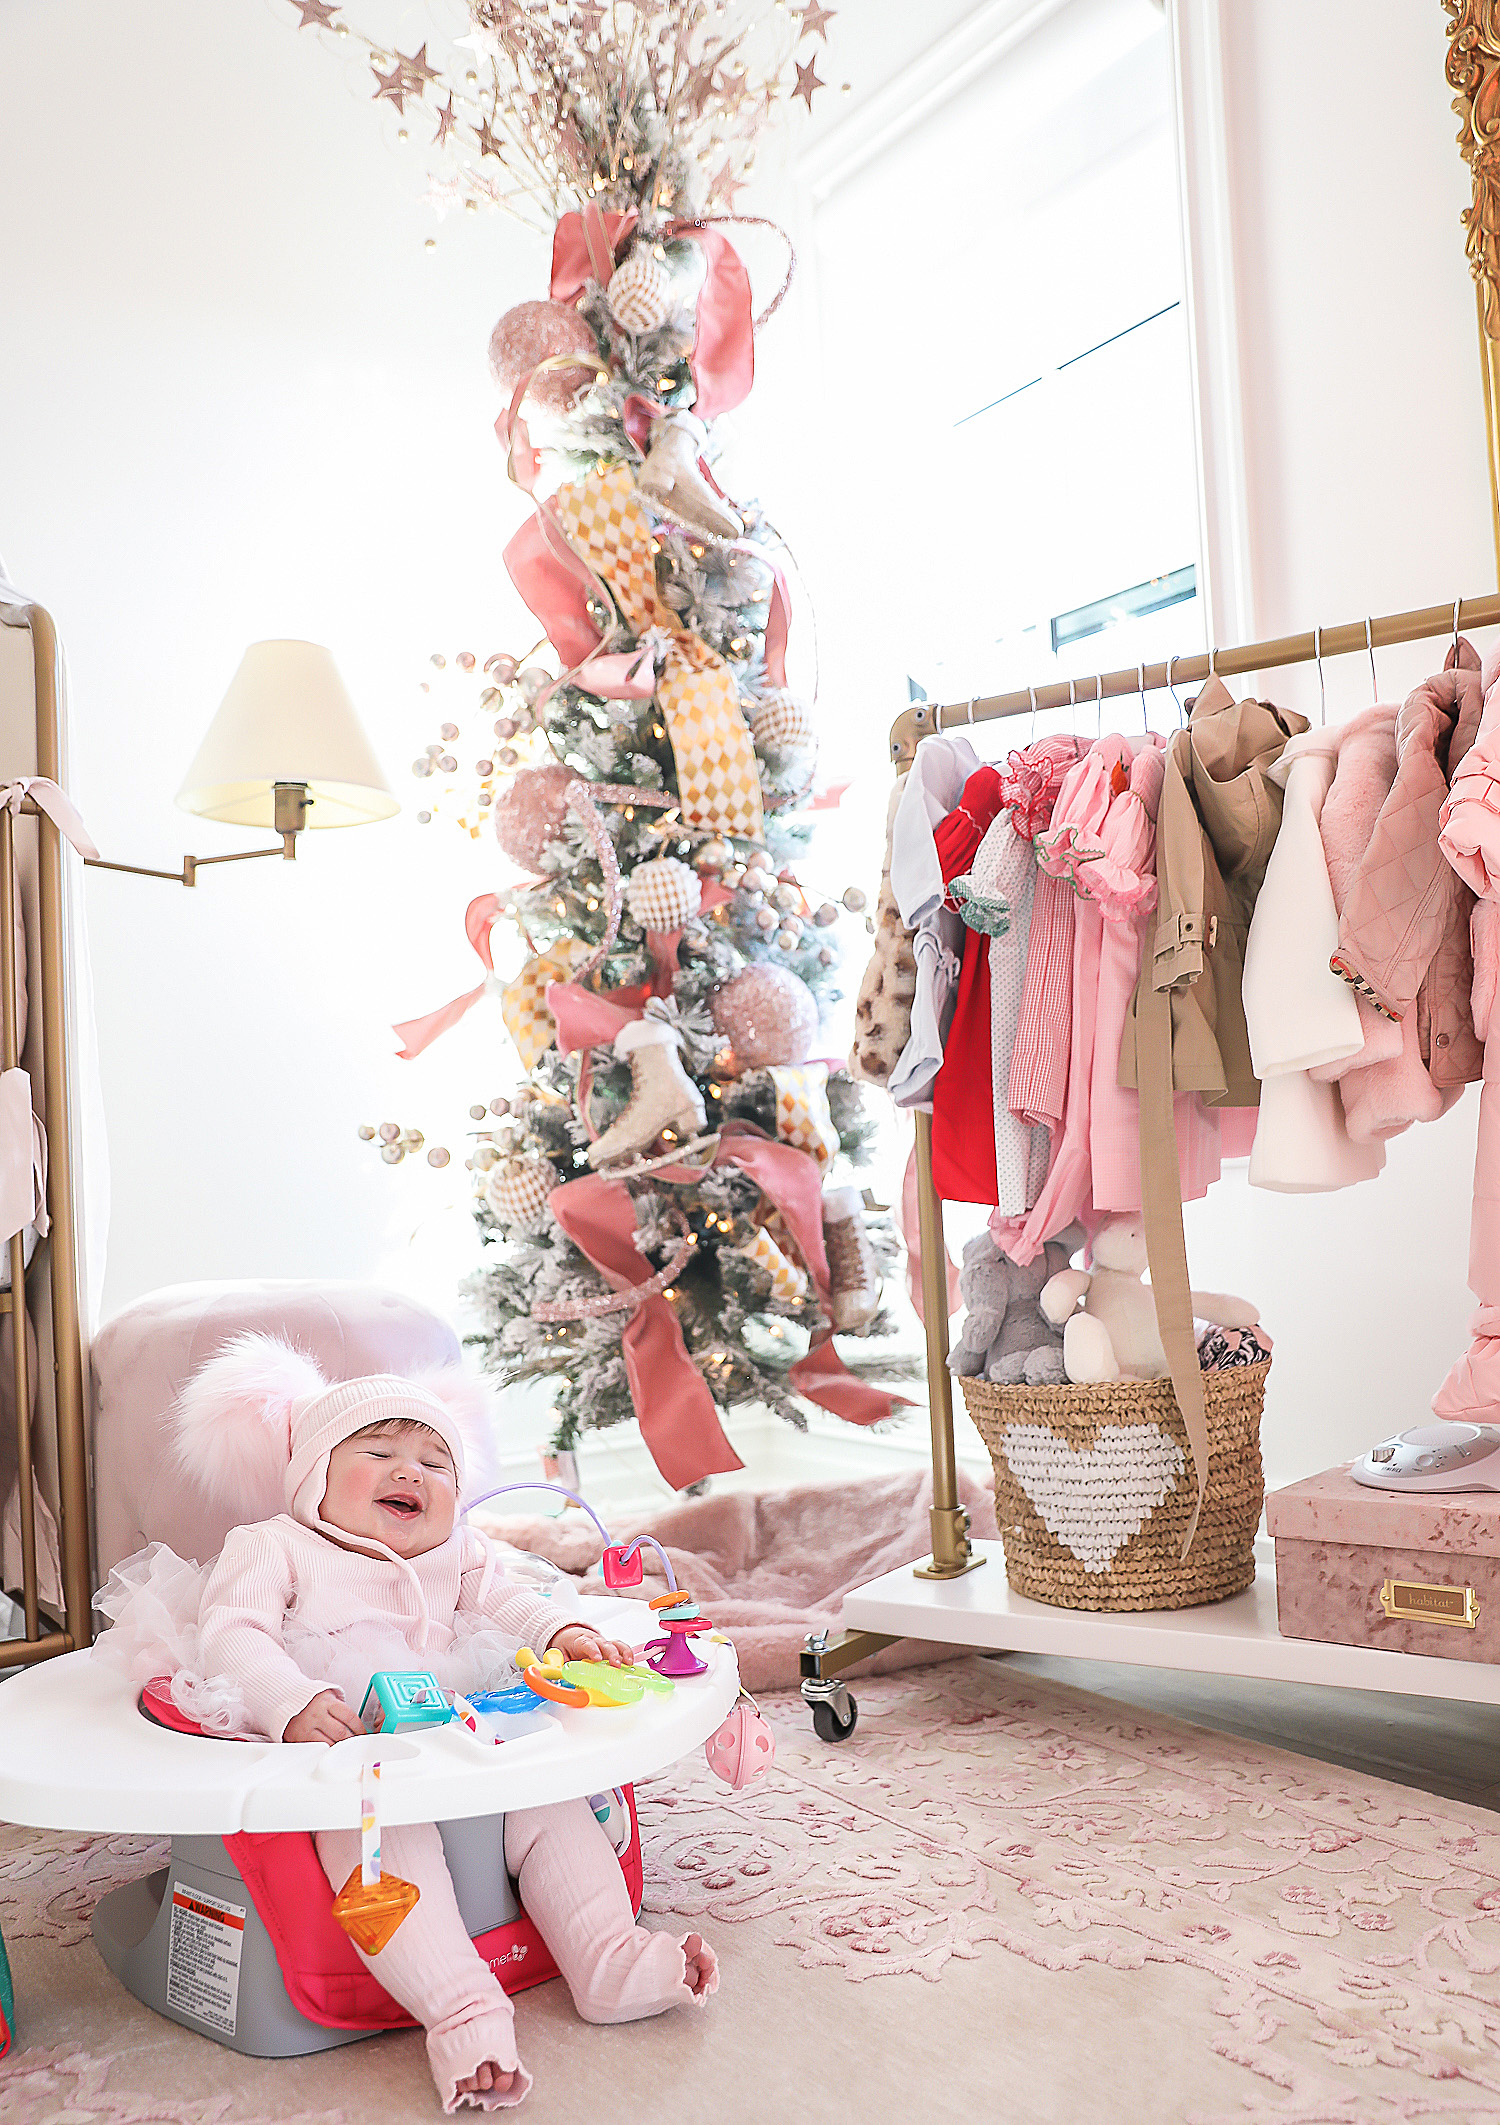 Affordable baby gifs featured by top US life and style blogger, Emily Gemma of The Sweetest Thing. baby girl nursery christmas time pinterest, christmas tree baby girl pink, emily gemma, tree, Christmas tree inspiration 2019, best baby gifts 6 month old christmas28